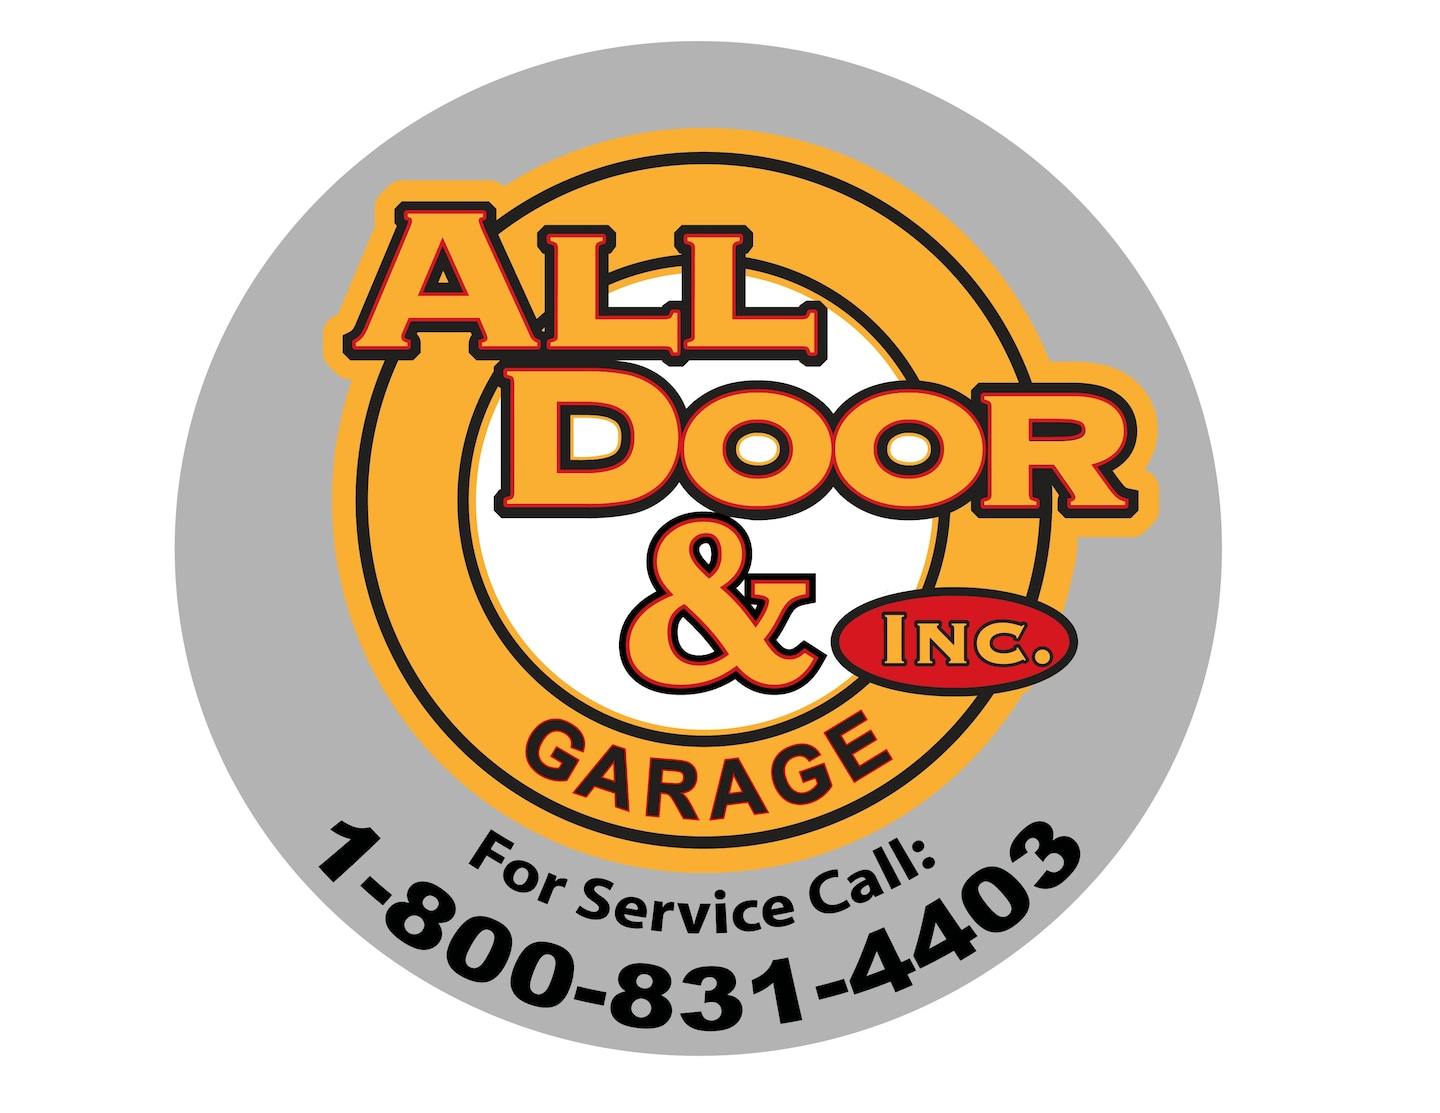 All Door & Garage, Inc.